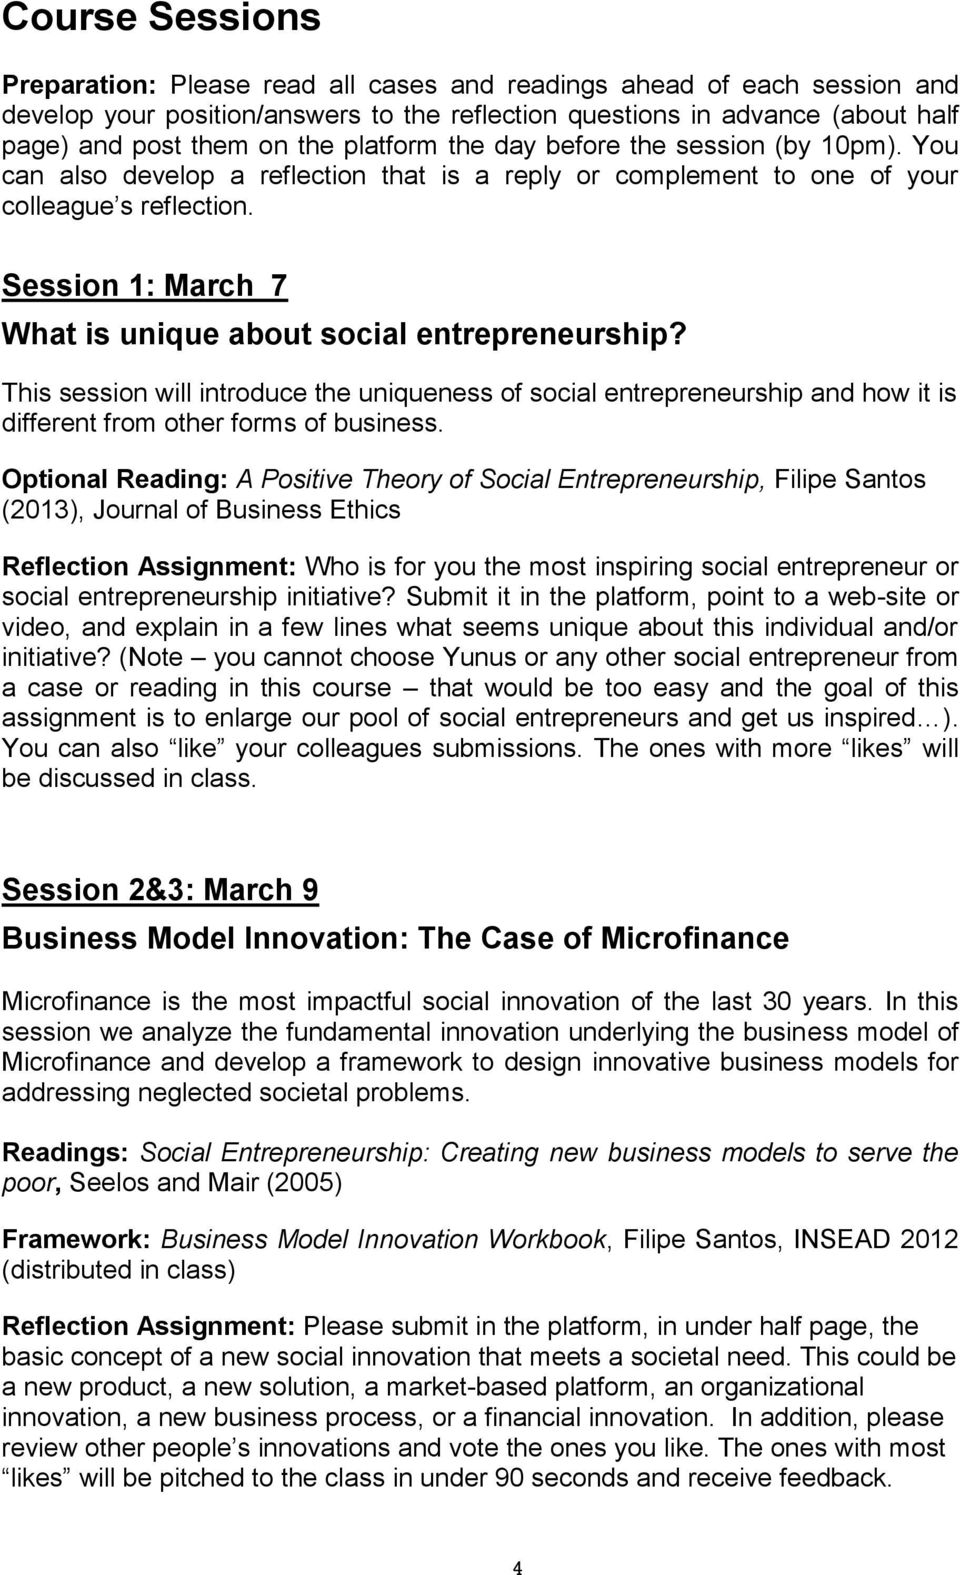 Session 1: March 7 What is unique about social entrepreneurship? This session will introduce the uniqueness of social entrepreneurship and how it is different from other forms of business.